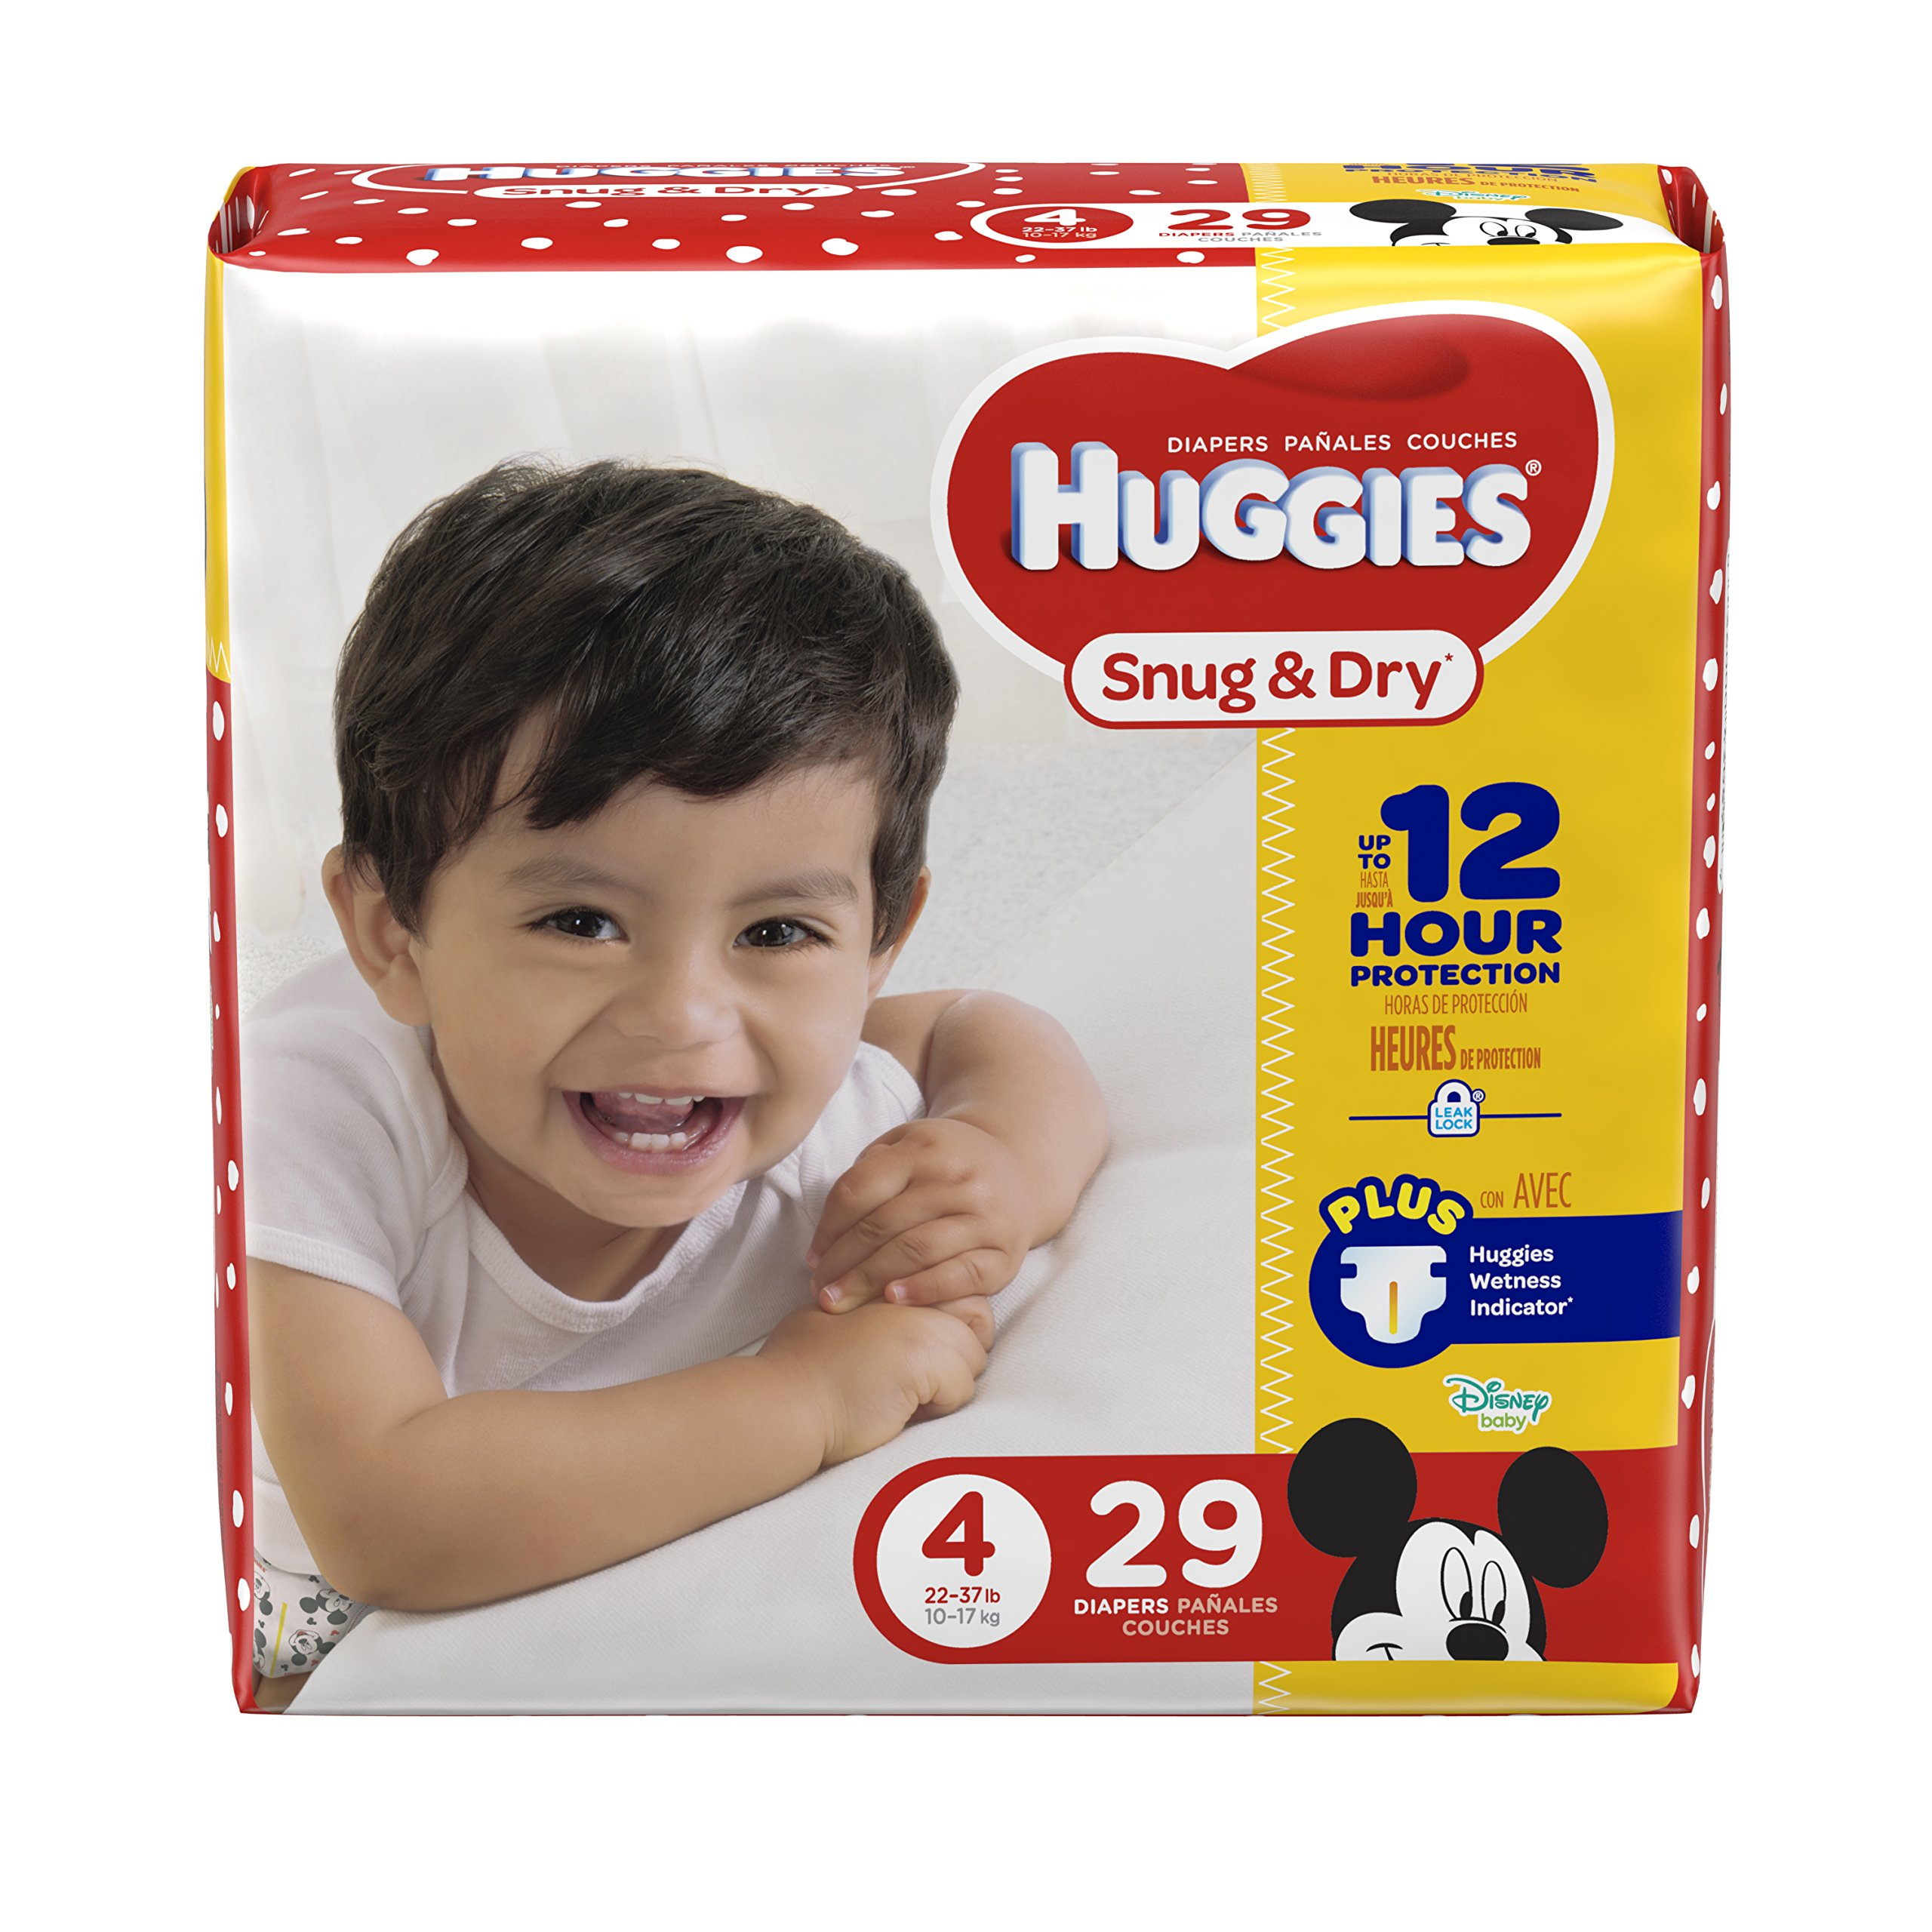 HUGGIES Snug & Dry Diapers, Size 4, 29 Count, JUMBO PACK (Packaging